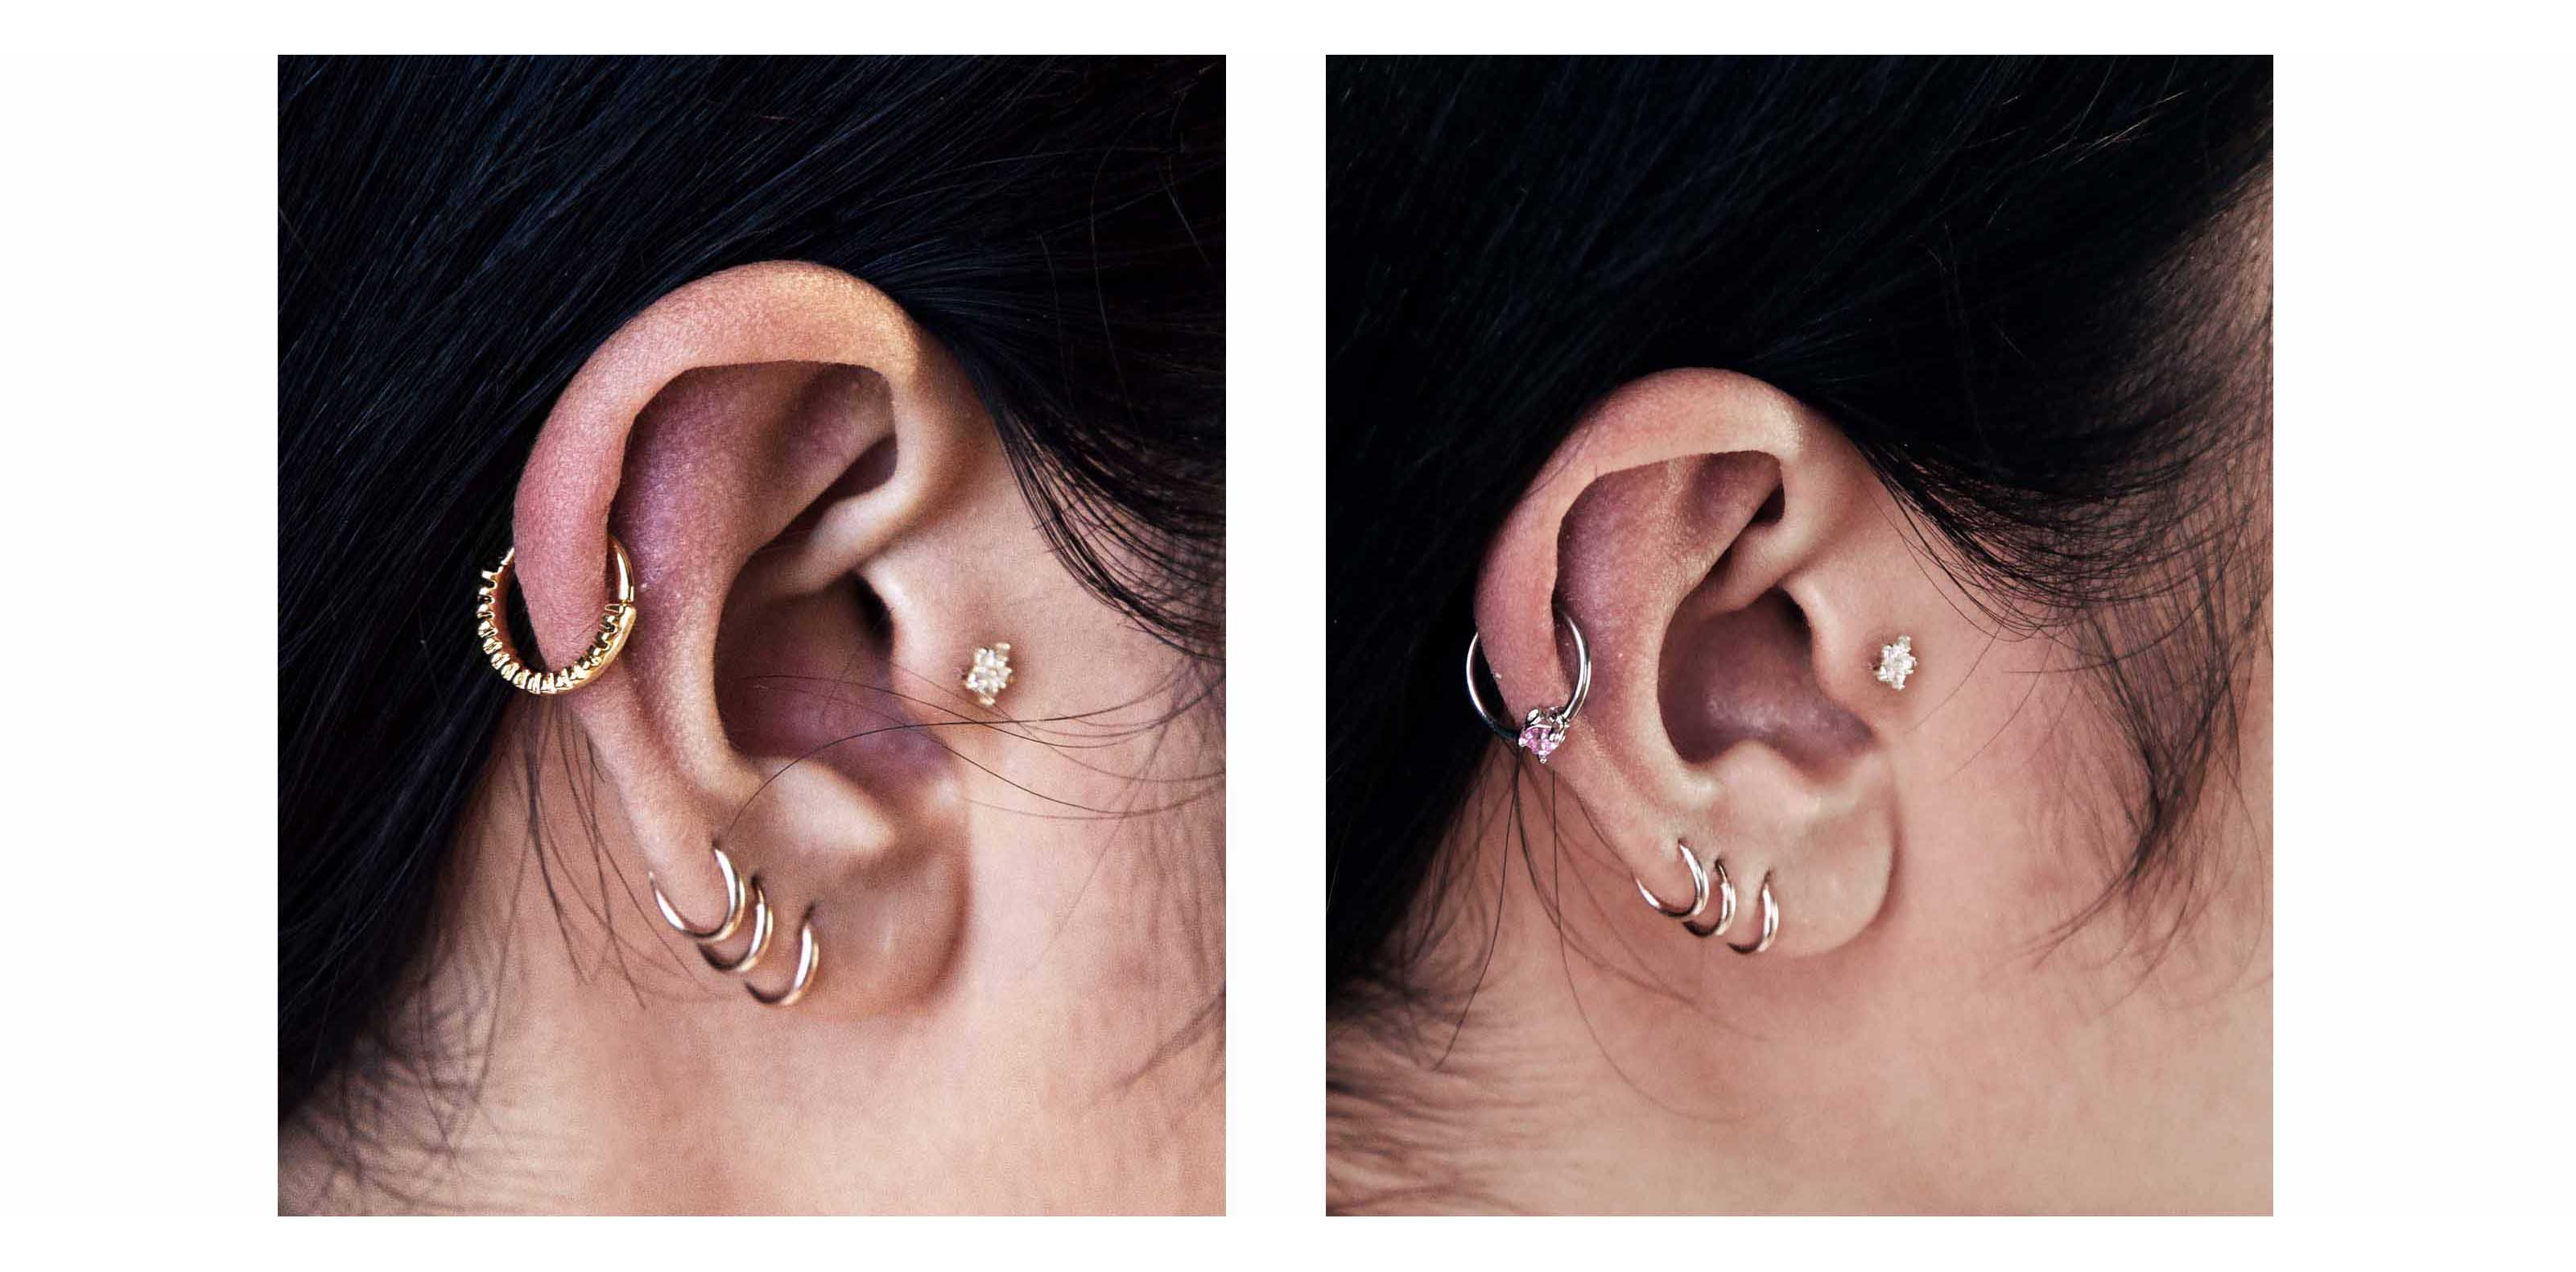 hight resolution of  upper cartilage of the ear for an edgy finish to your ear curation stack multiple hoops and combi it with dangly lobe piercings for a look bad girl